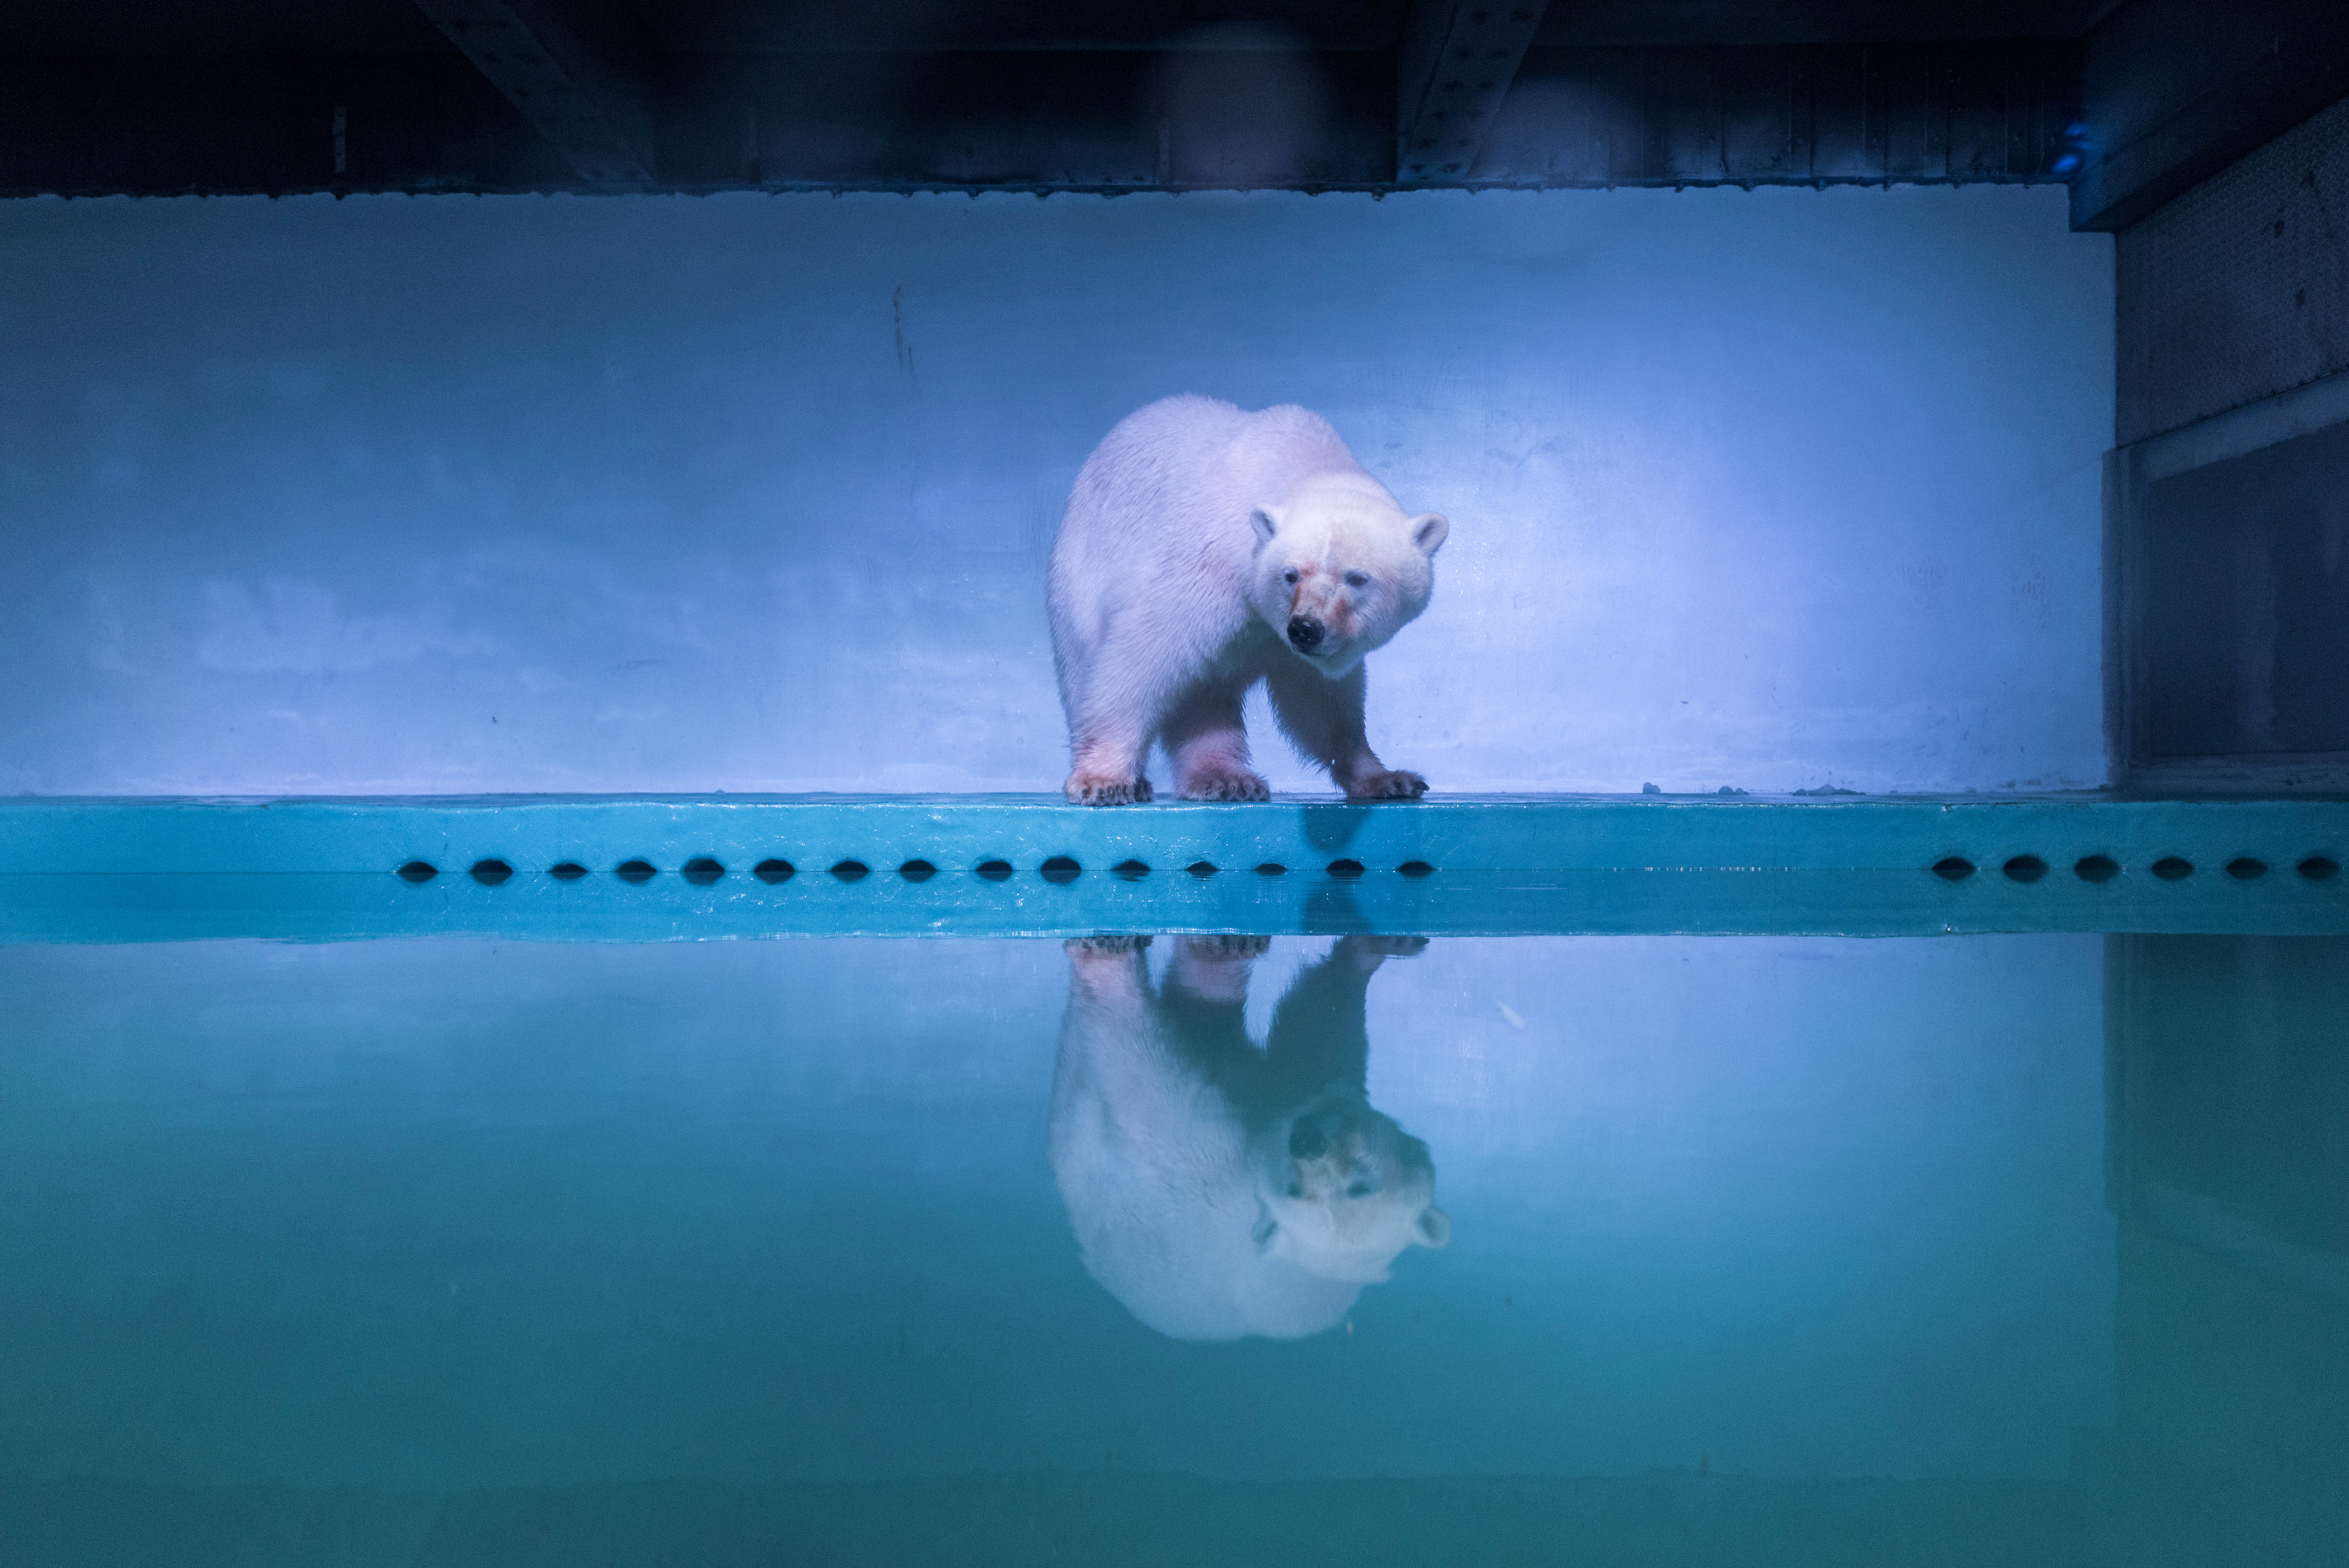 Rights groups urge permanent move from China mall for 'saddest' polar bear